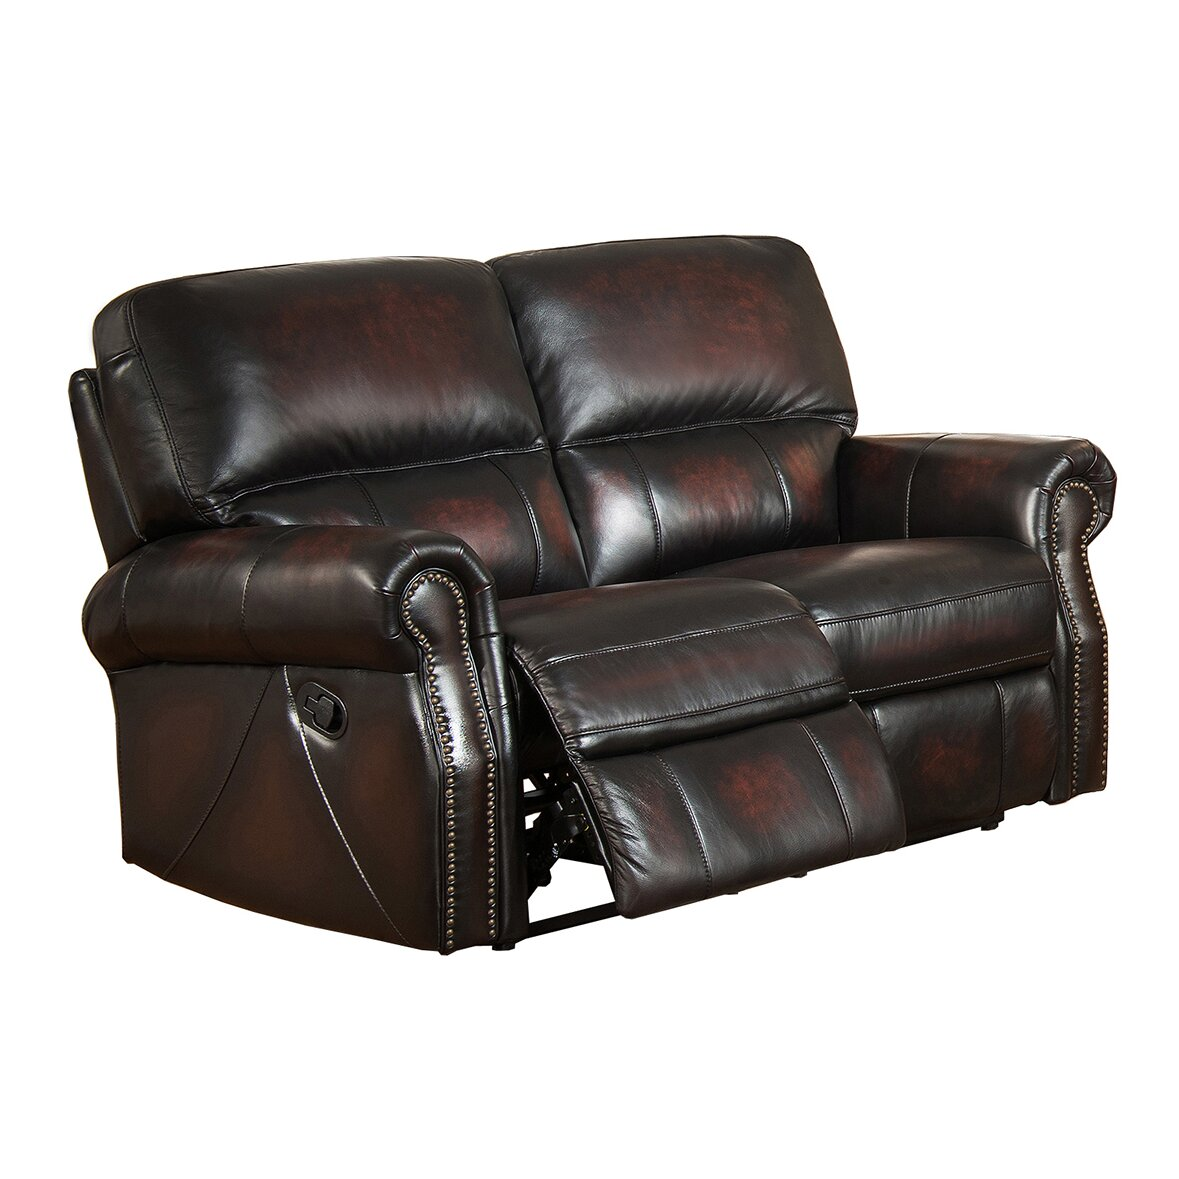 Amax nevada leather recliner sofa and loveseat set wayfair Reclining leather sofa and loveseat